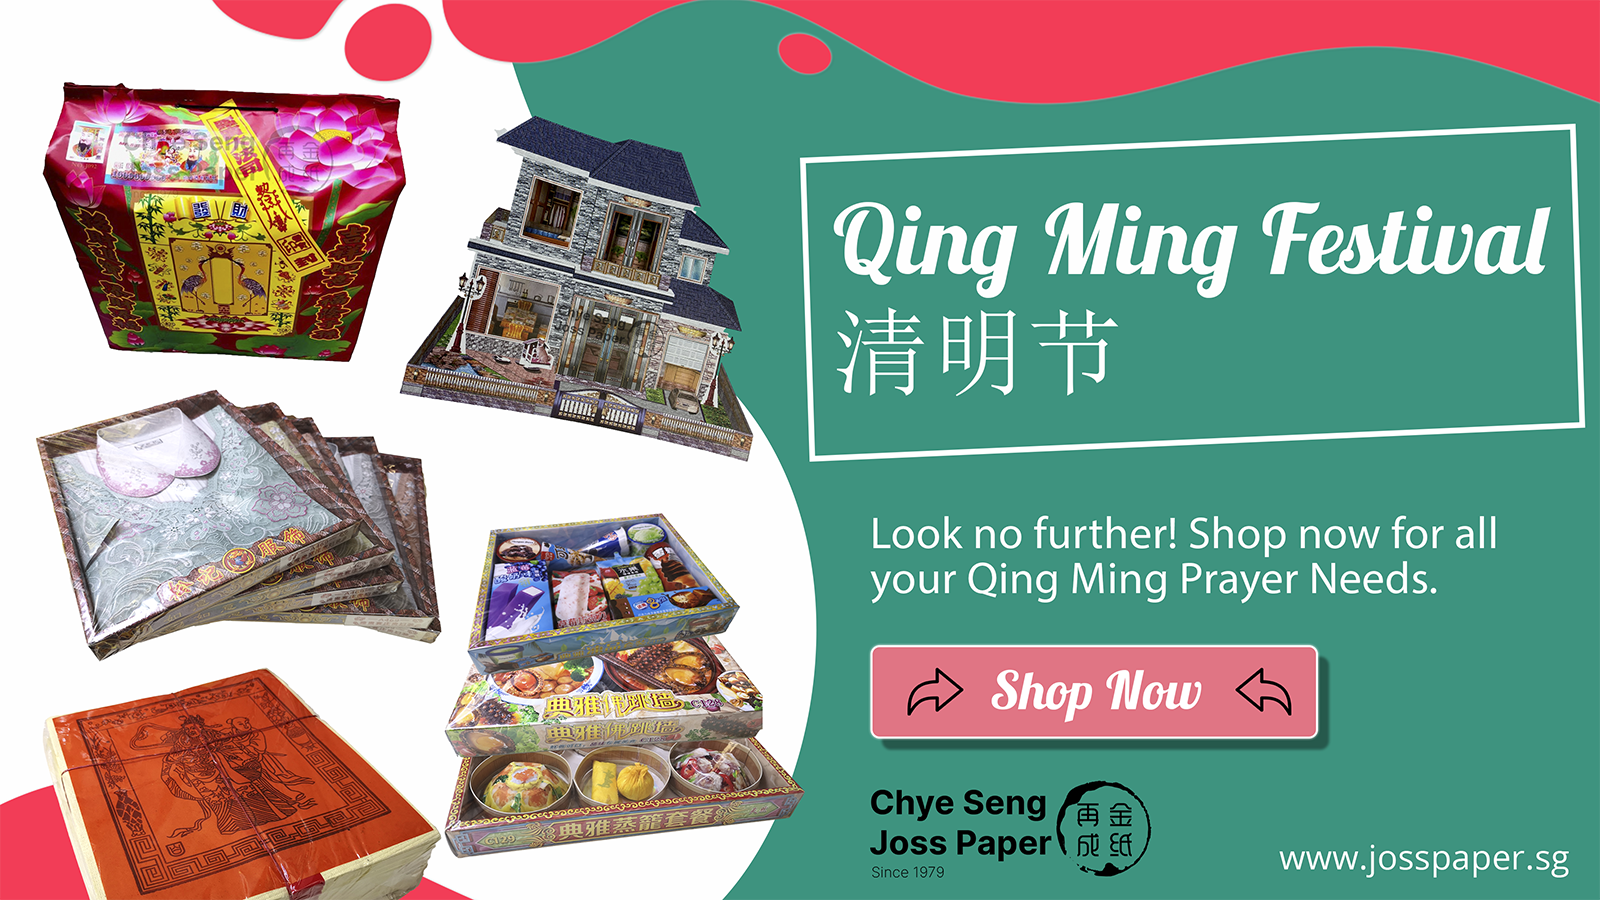 Buy our wide range of products this Qing Ming Festival